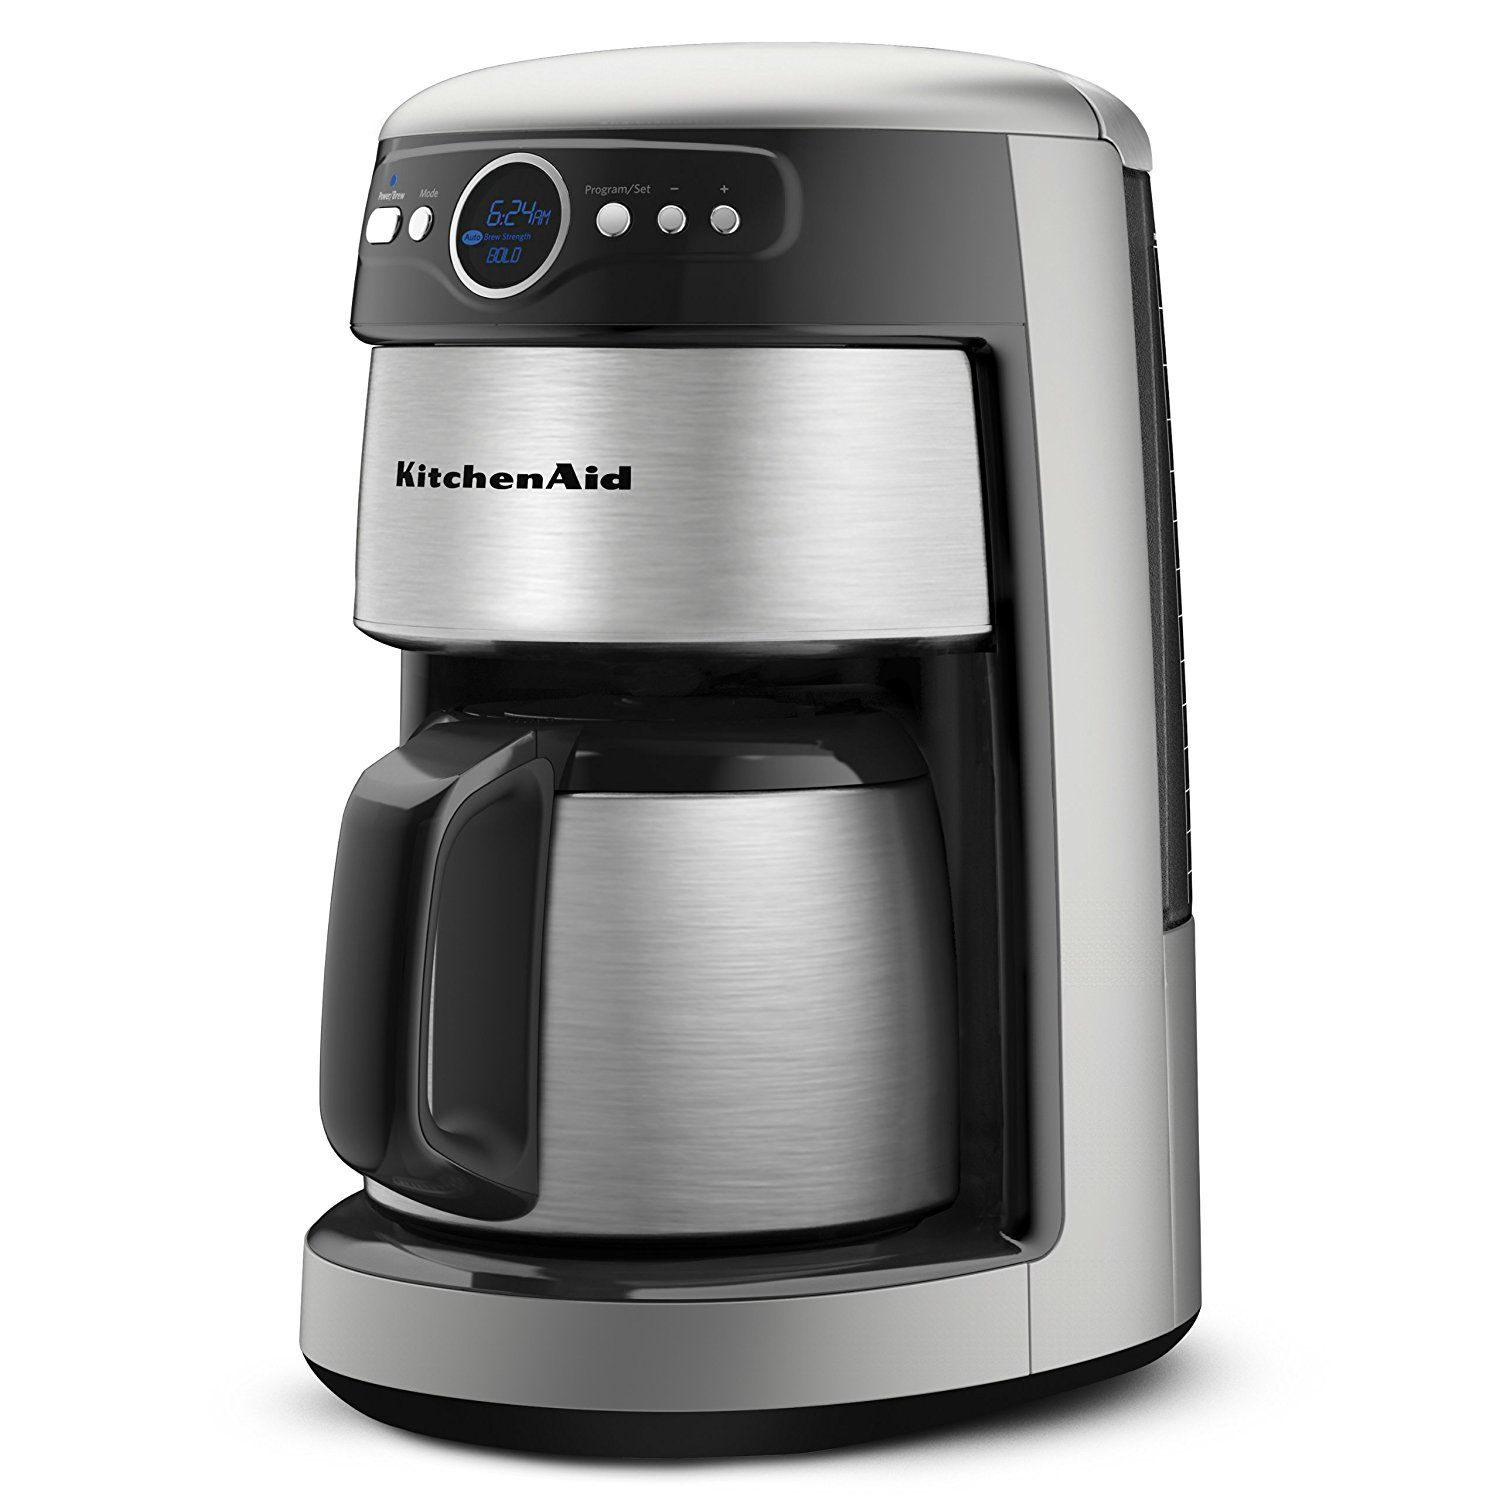 KitchenAid 12Cup Thermal Carafe Coffee Maker, Countour